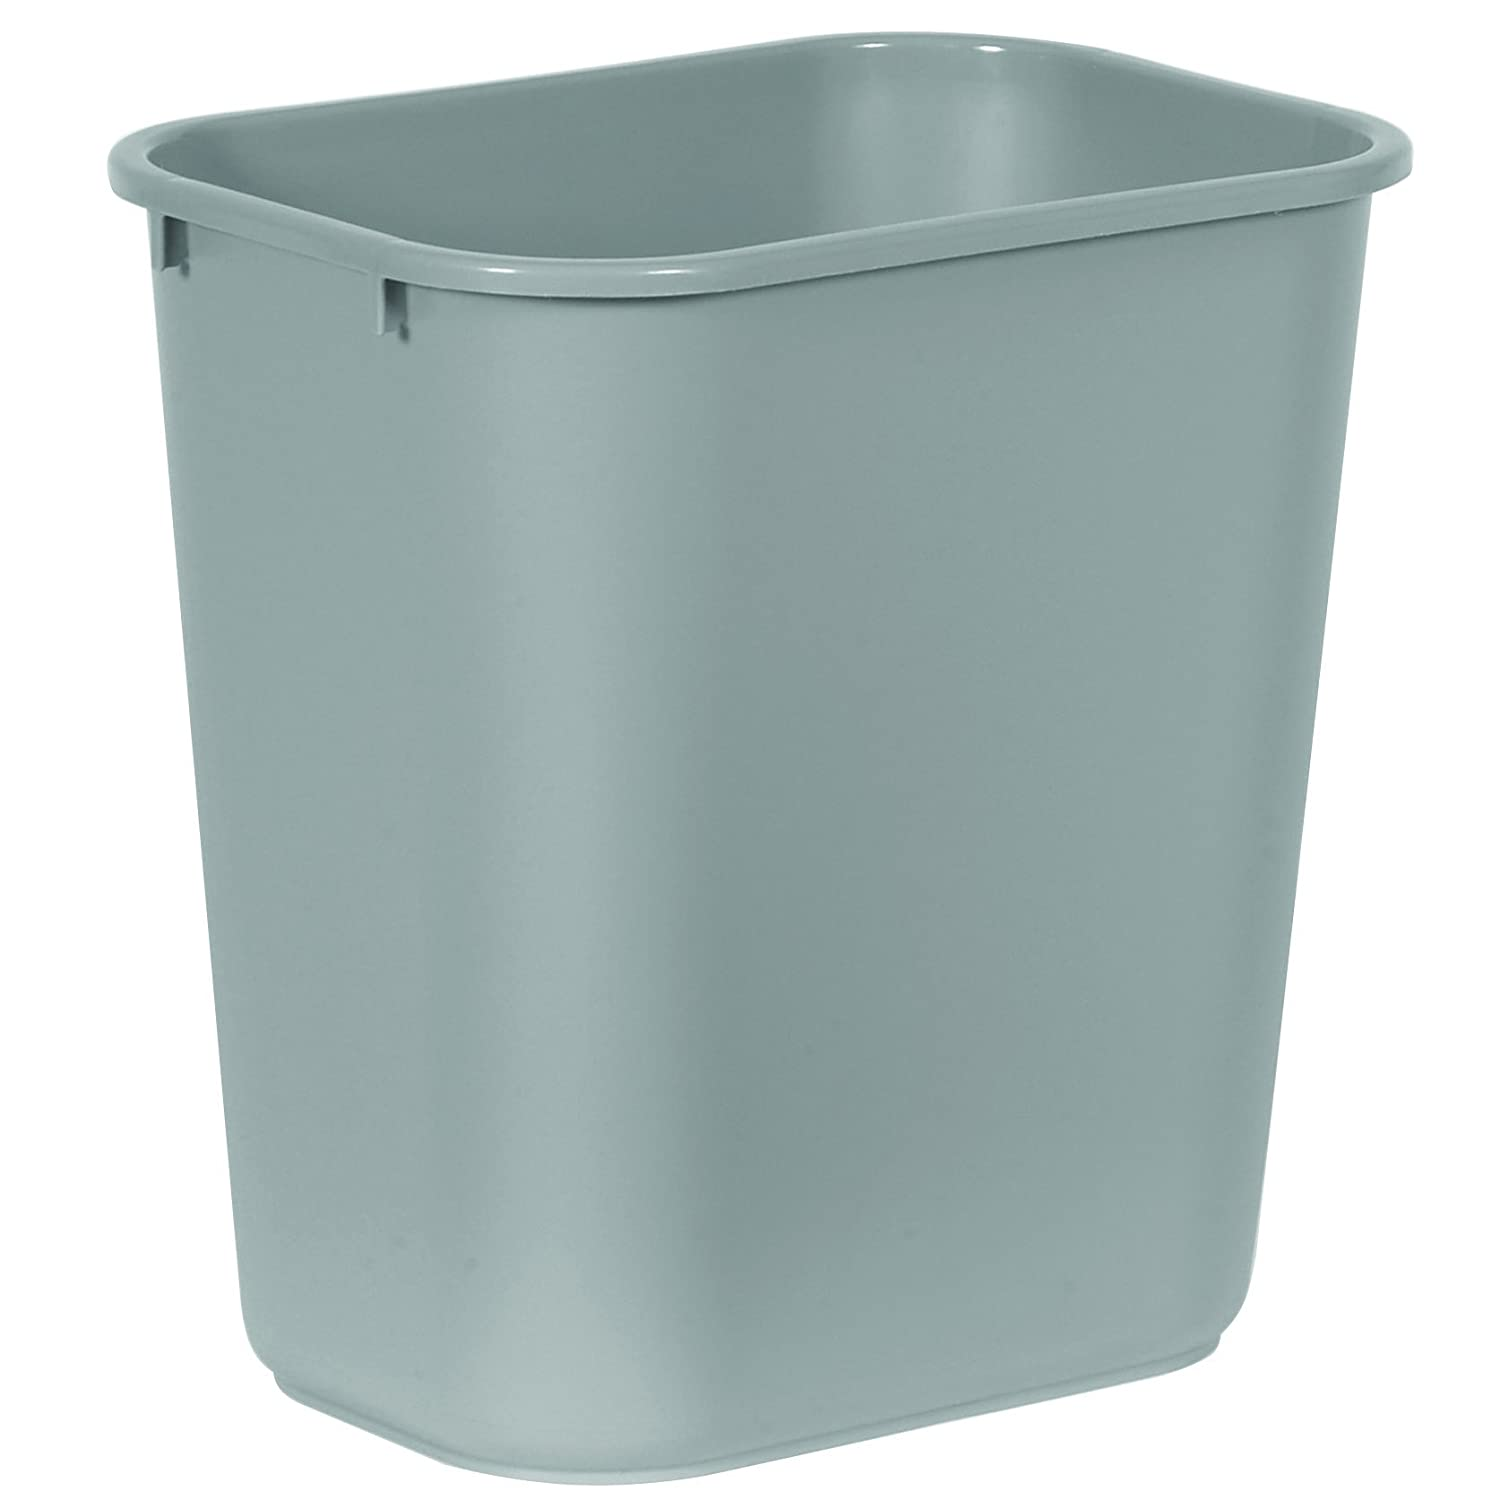 "Rubbermaid Commercial 2956 LLDPE 28-1/8 Quart Deskside Medium Trash Can, Rectangular, 10-1/4"" Width x 14-3/8"" Depth x 15"" Height, Gray"